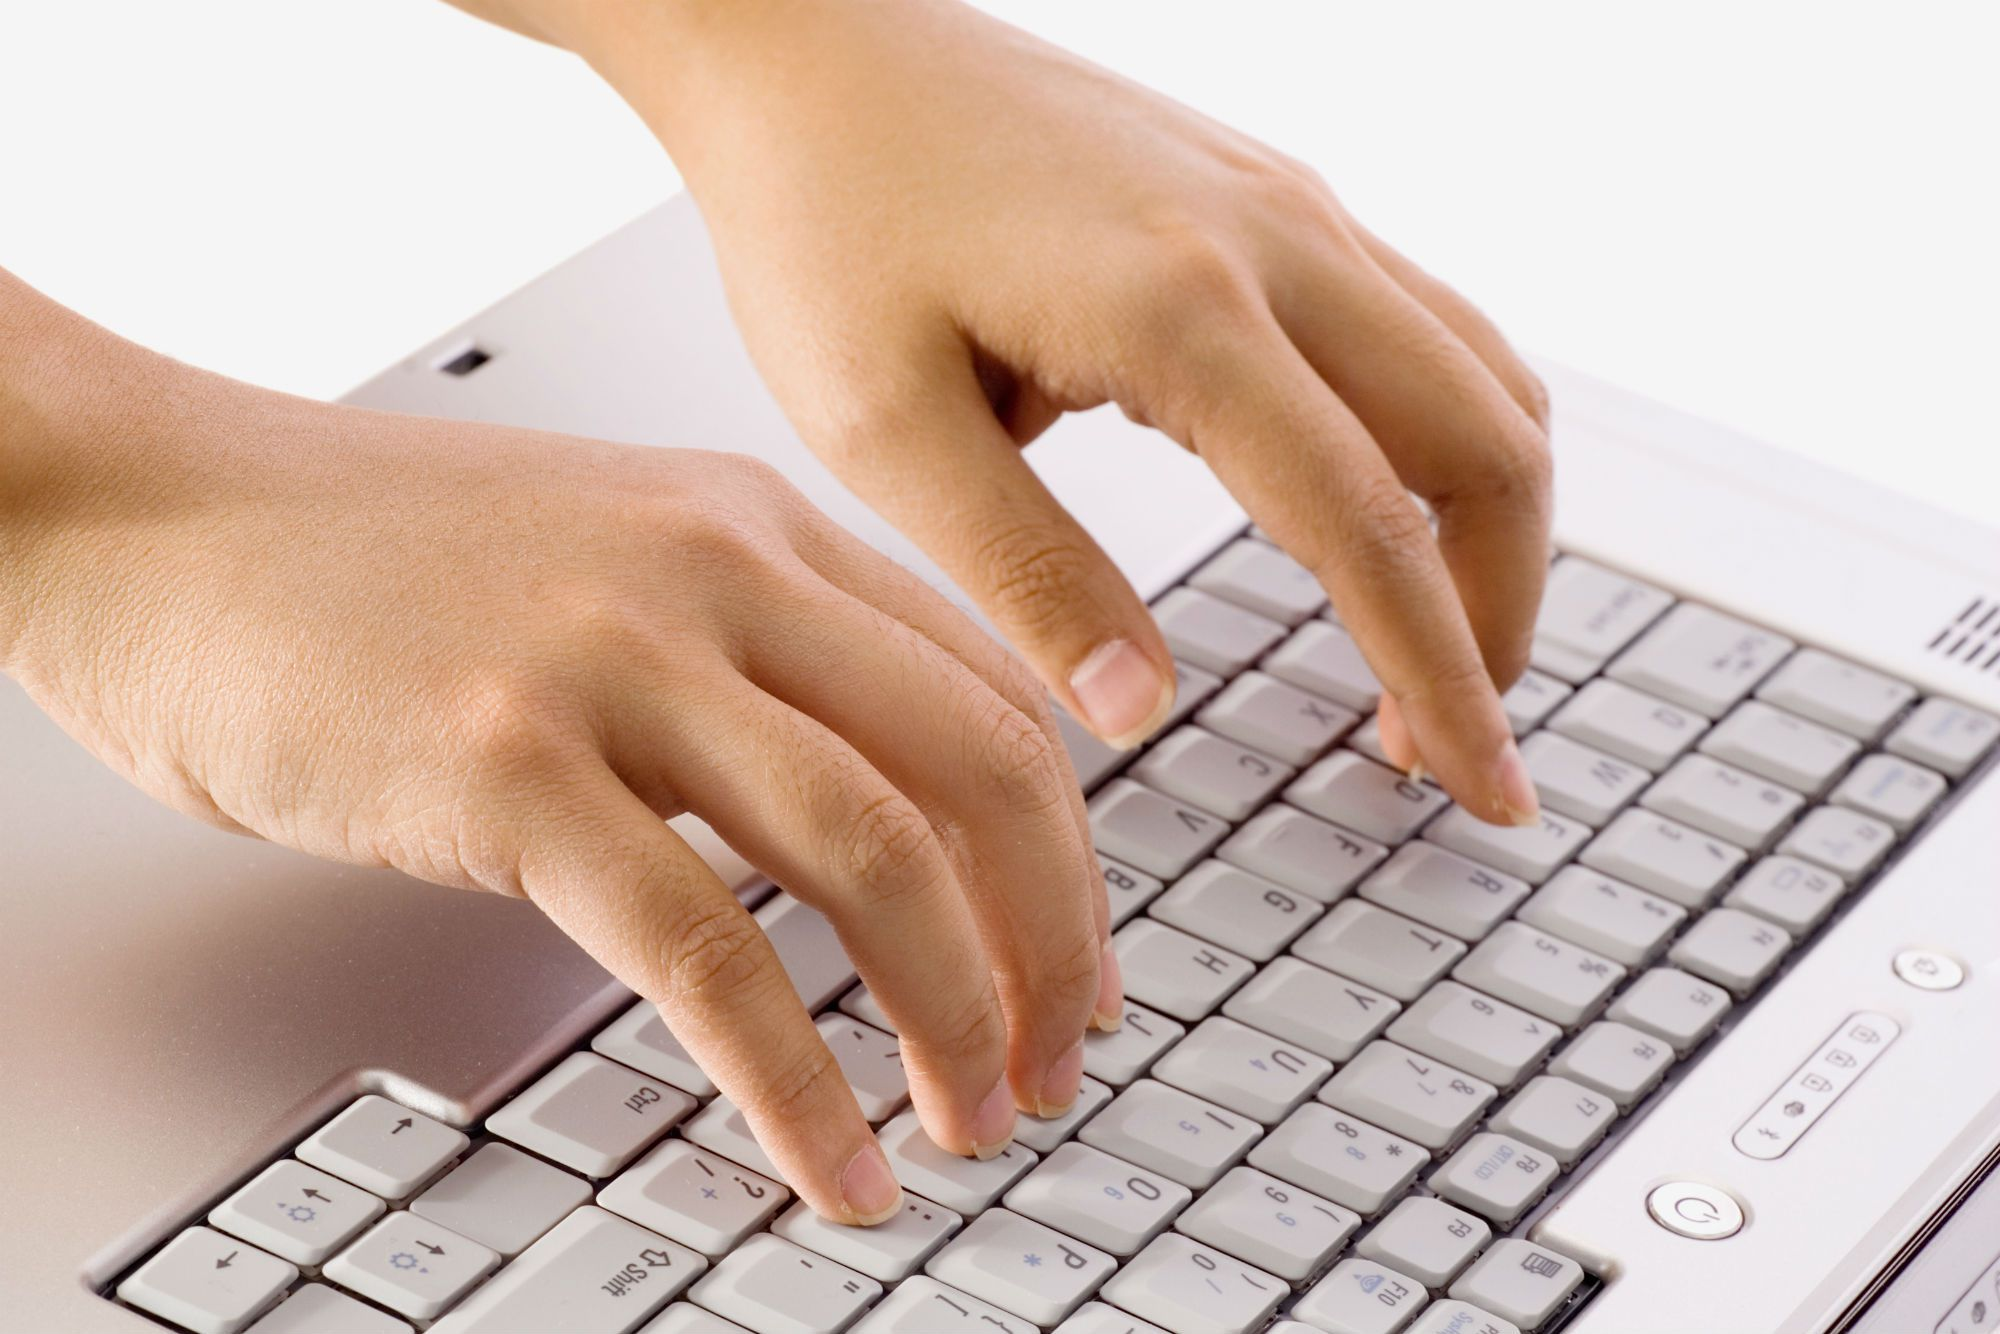 Capital Typing Work at Home Jobs